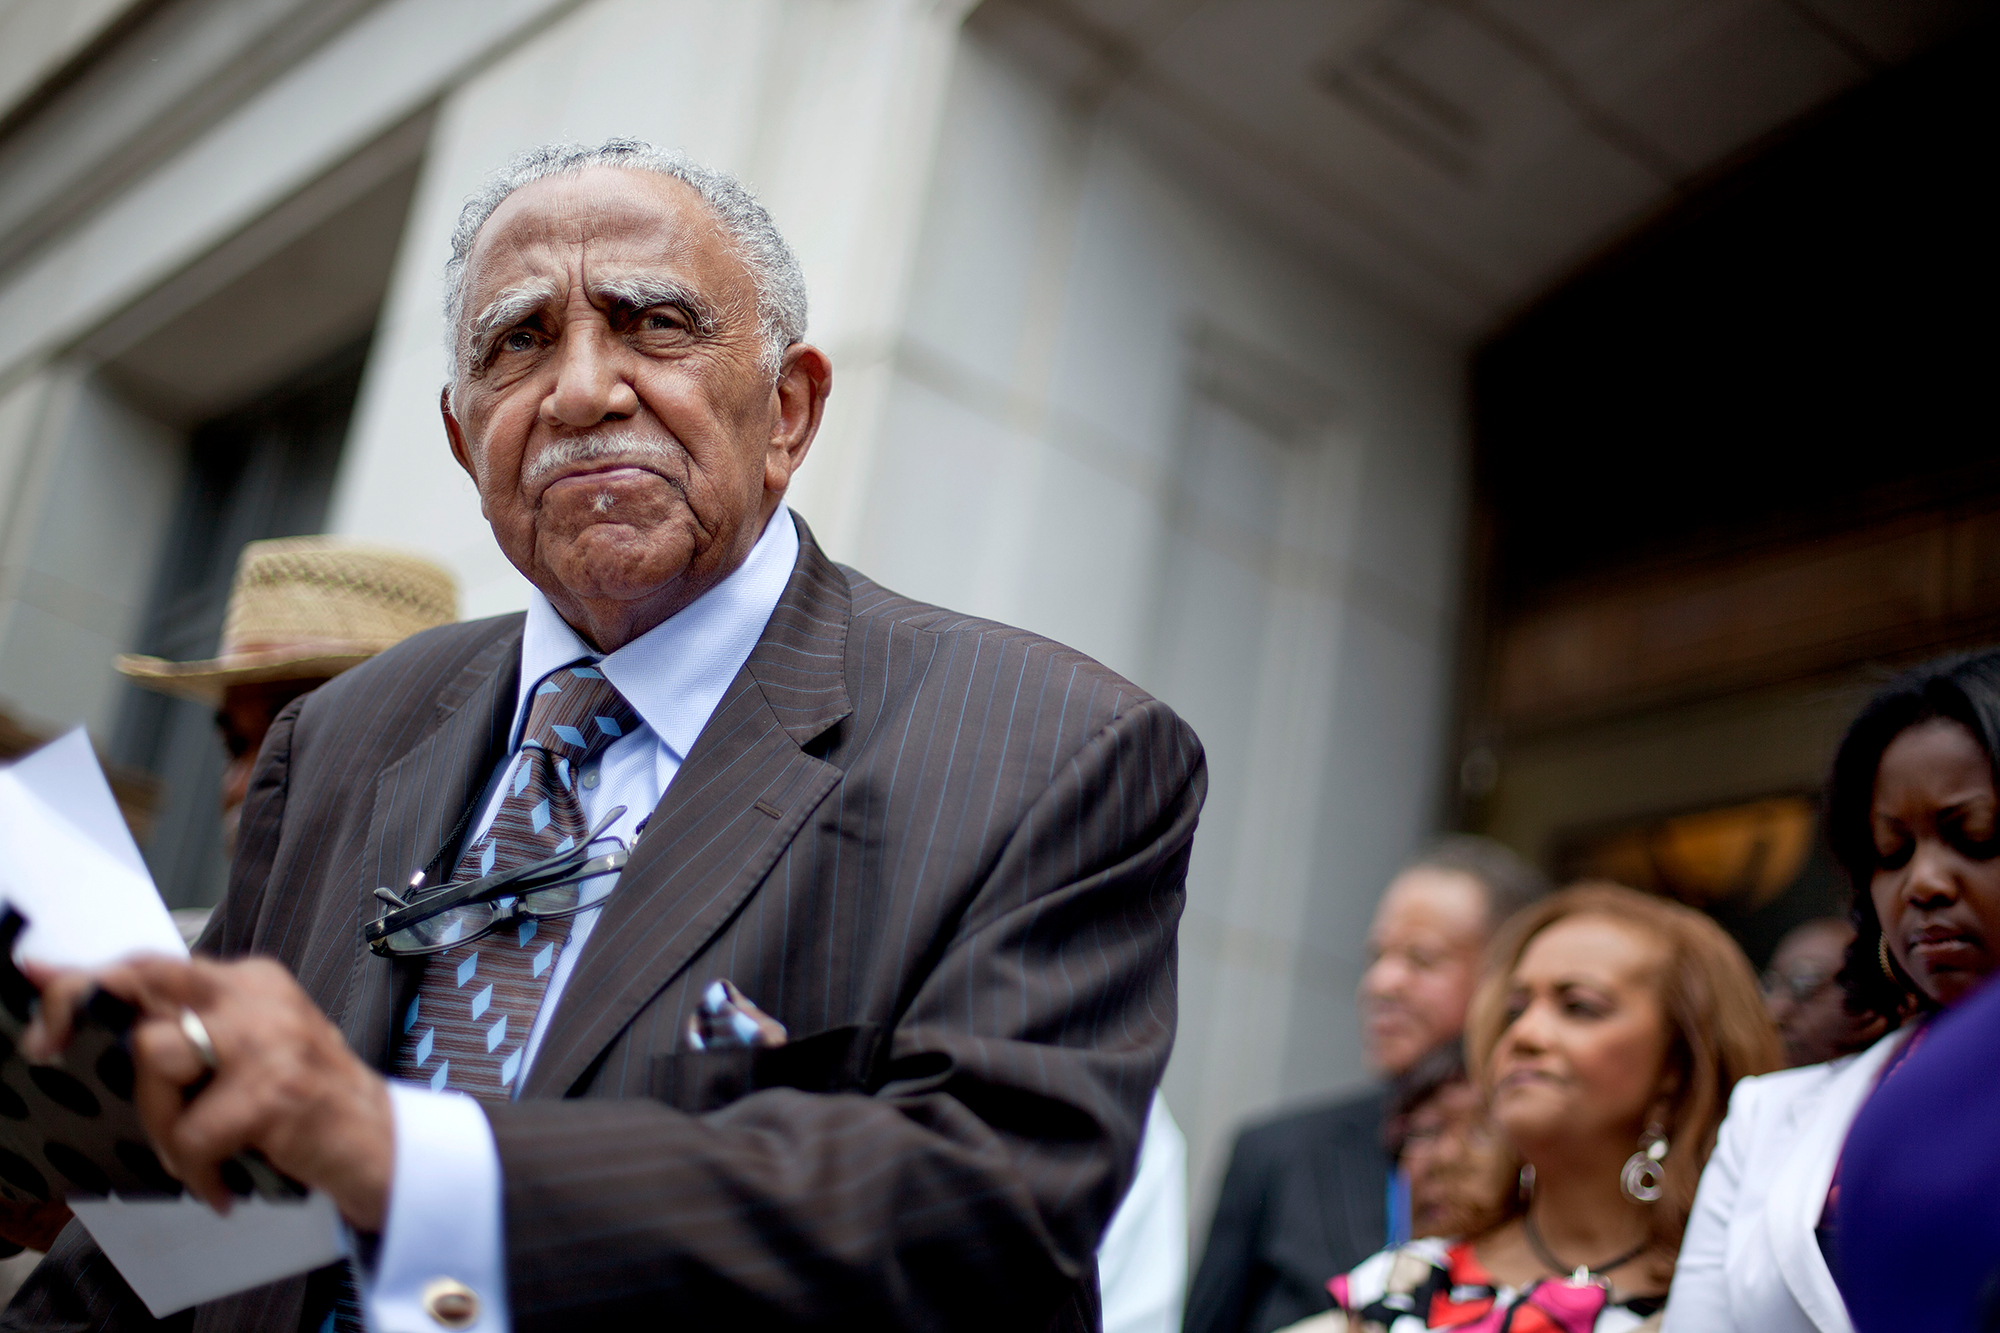 Joseph Lowery, civil rights leader, dies at 98